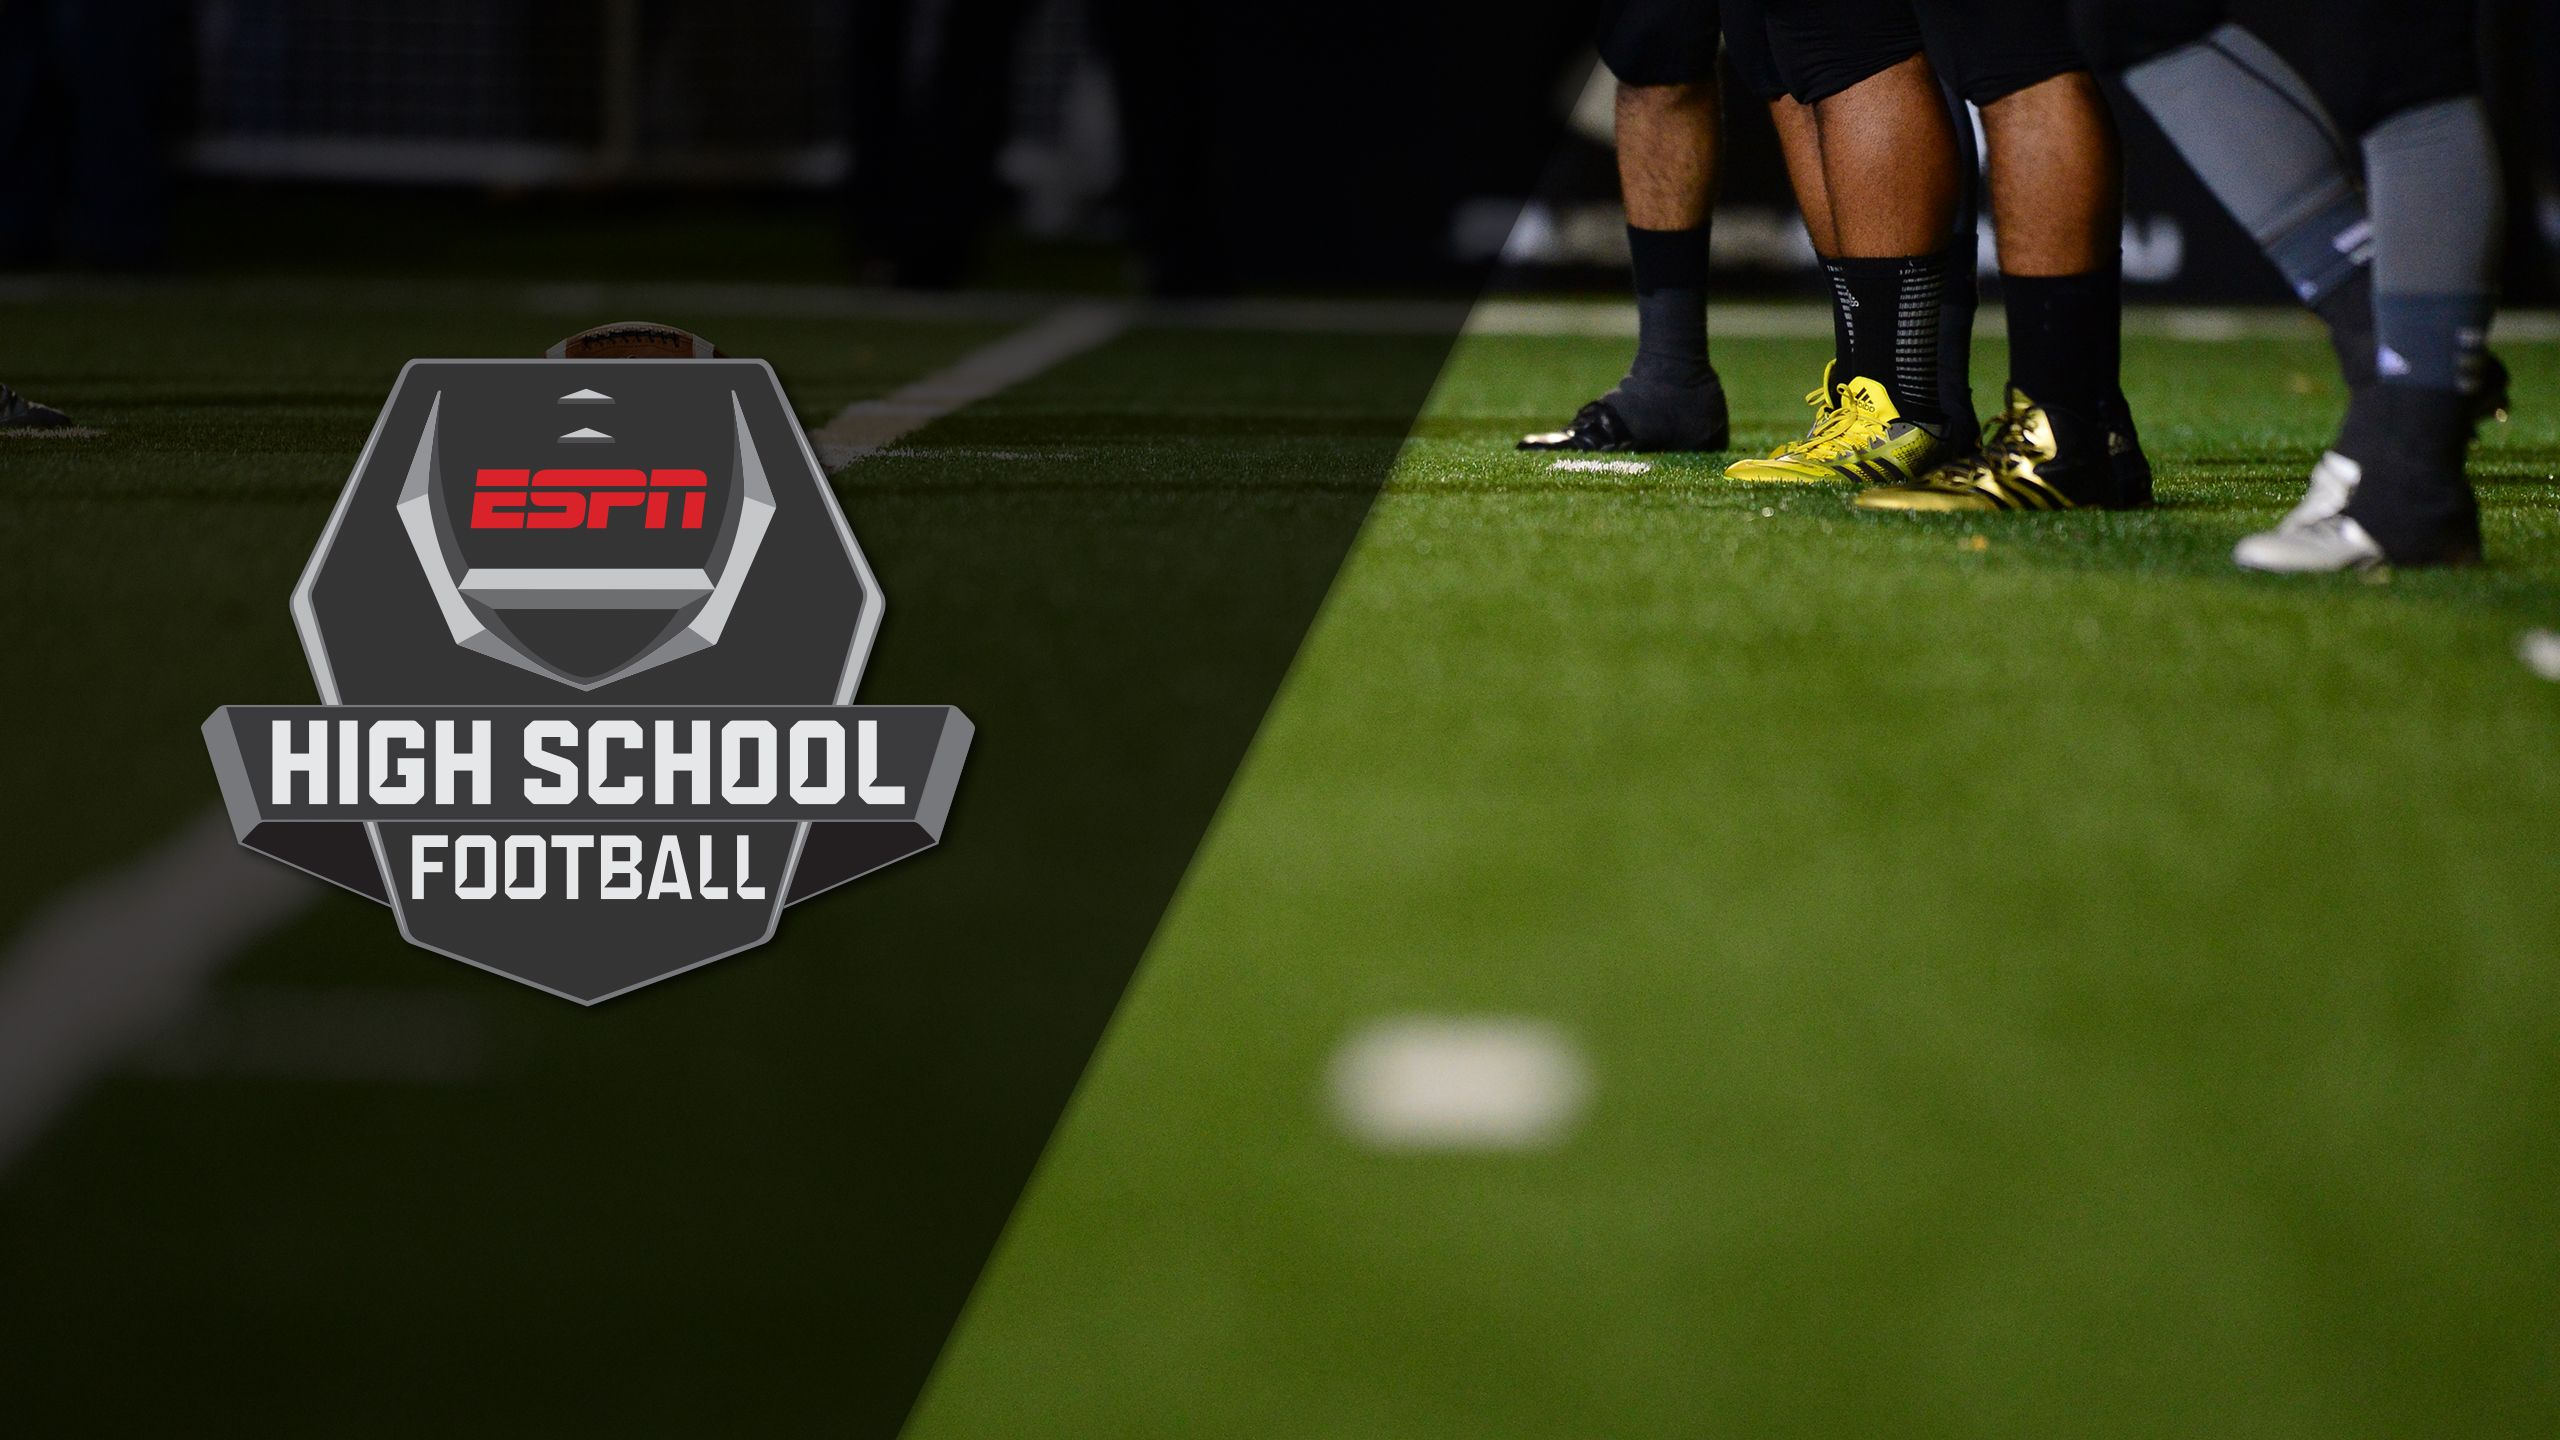 Mullen (CO) vs. Bothell (WA) (High School Football) (re-air)